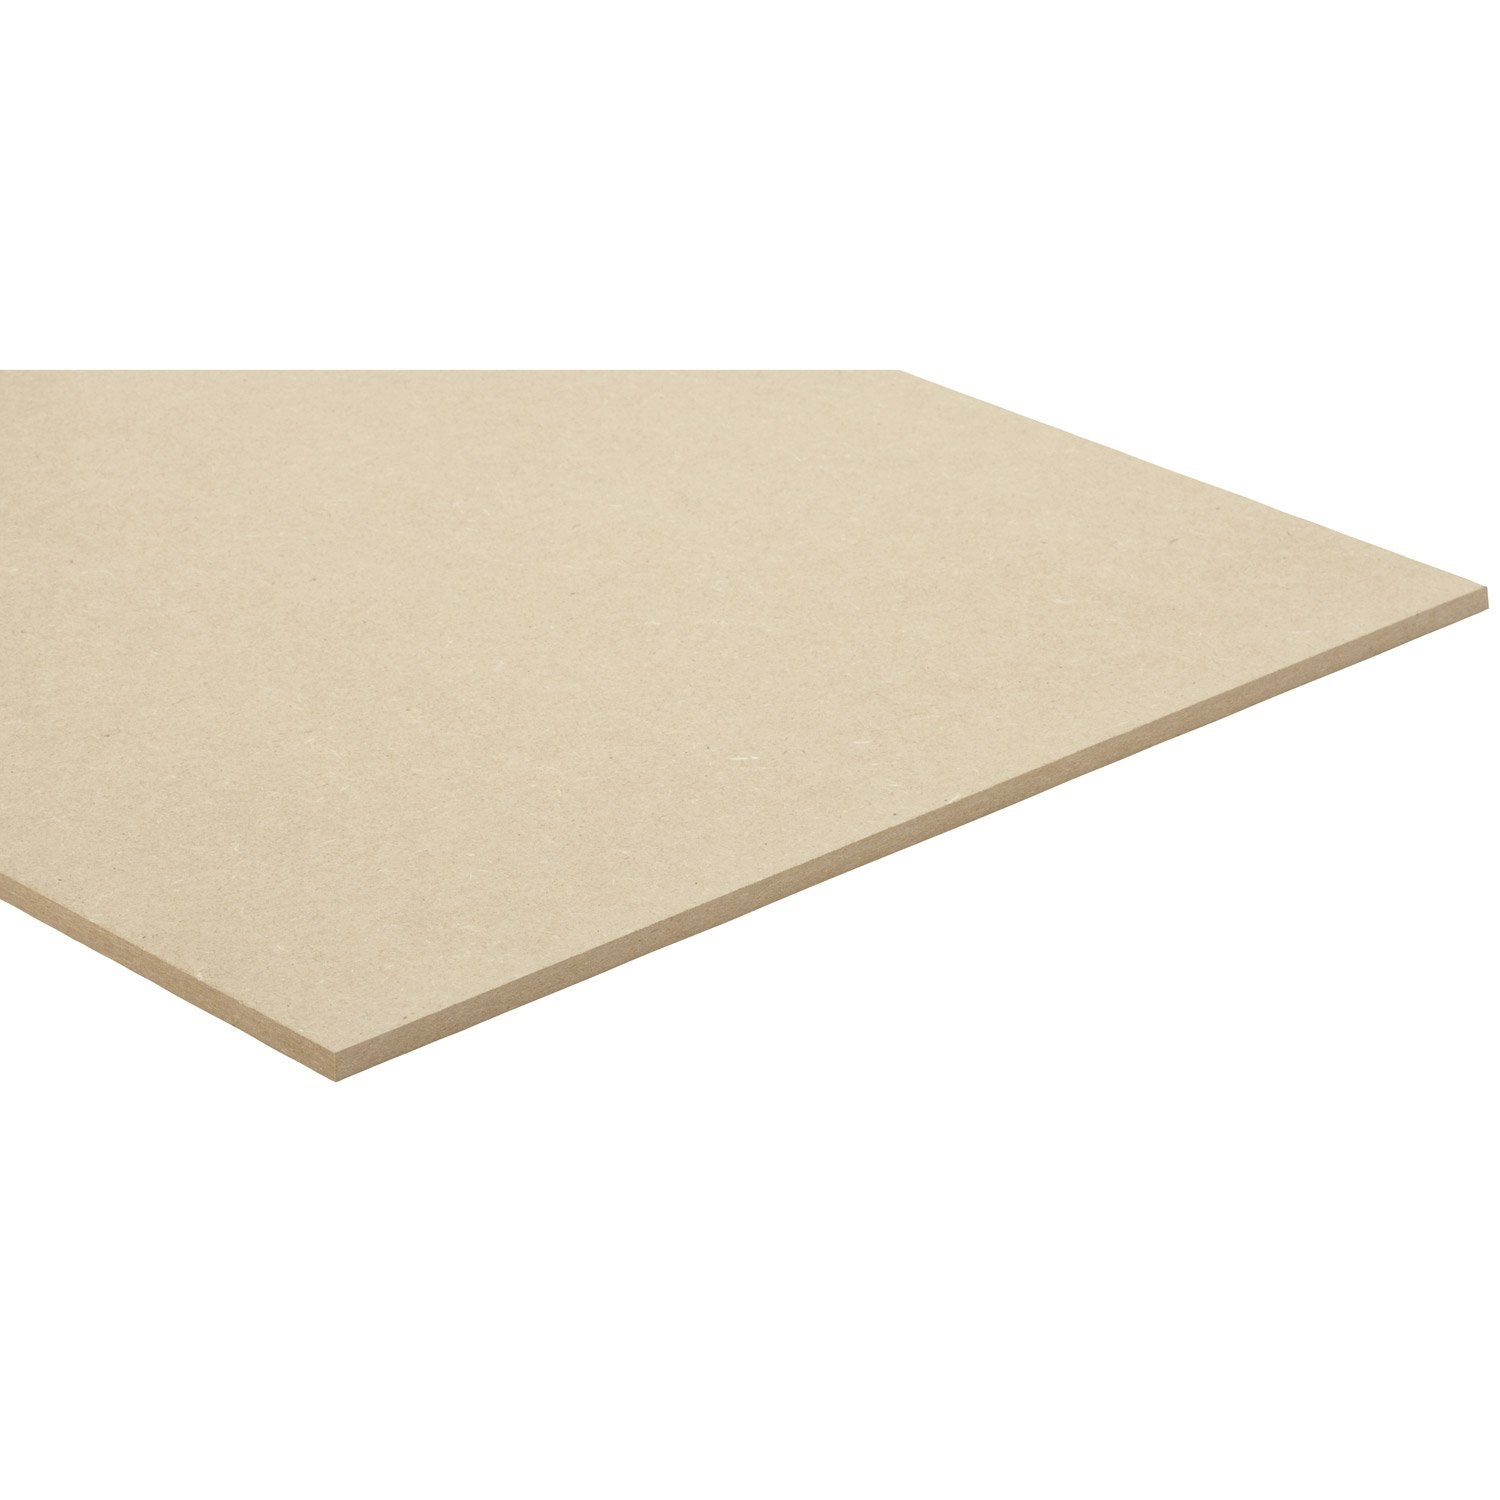 Panneau Médium Mdf Naturel Ep 10 Mm X L 250 X L 122 Cm Leroy Merlin